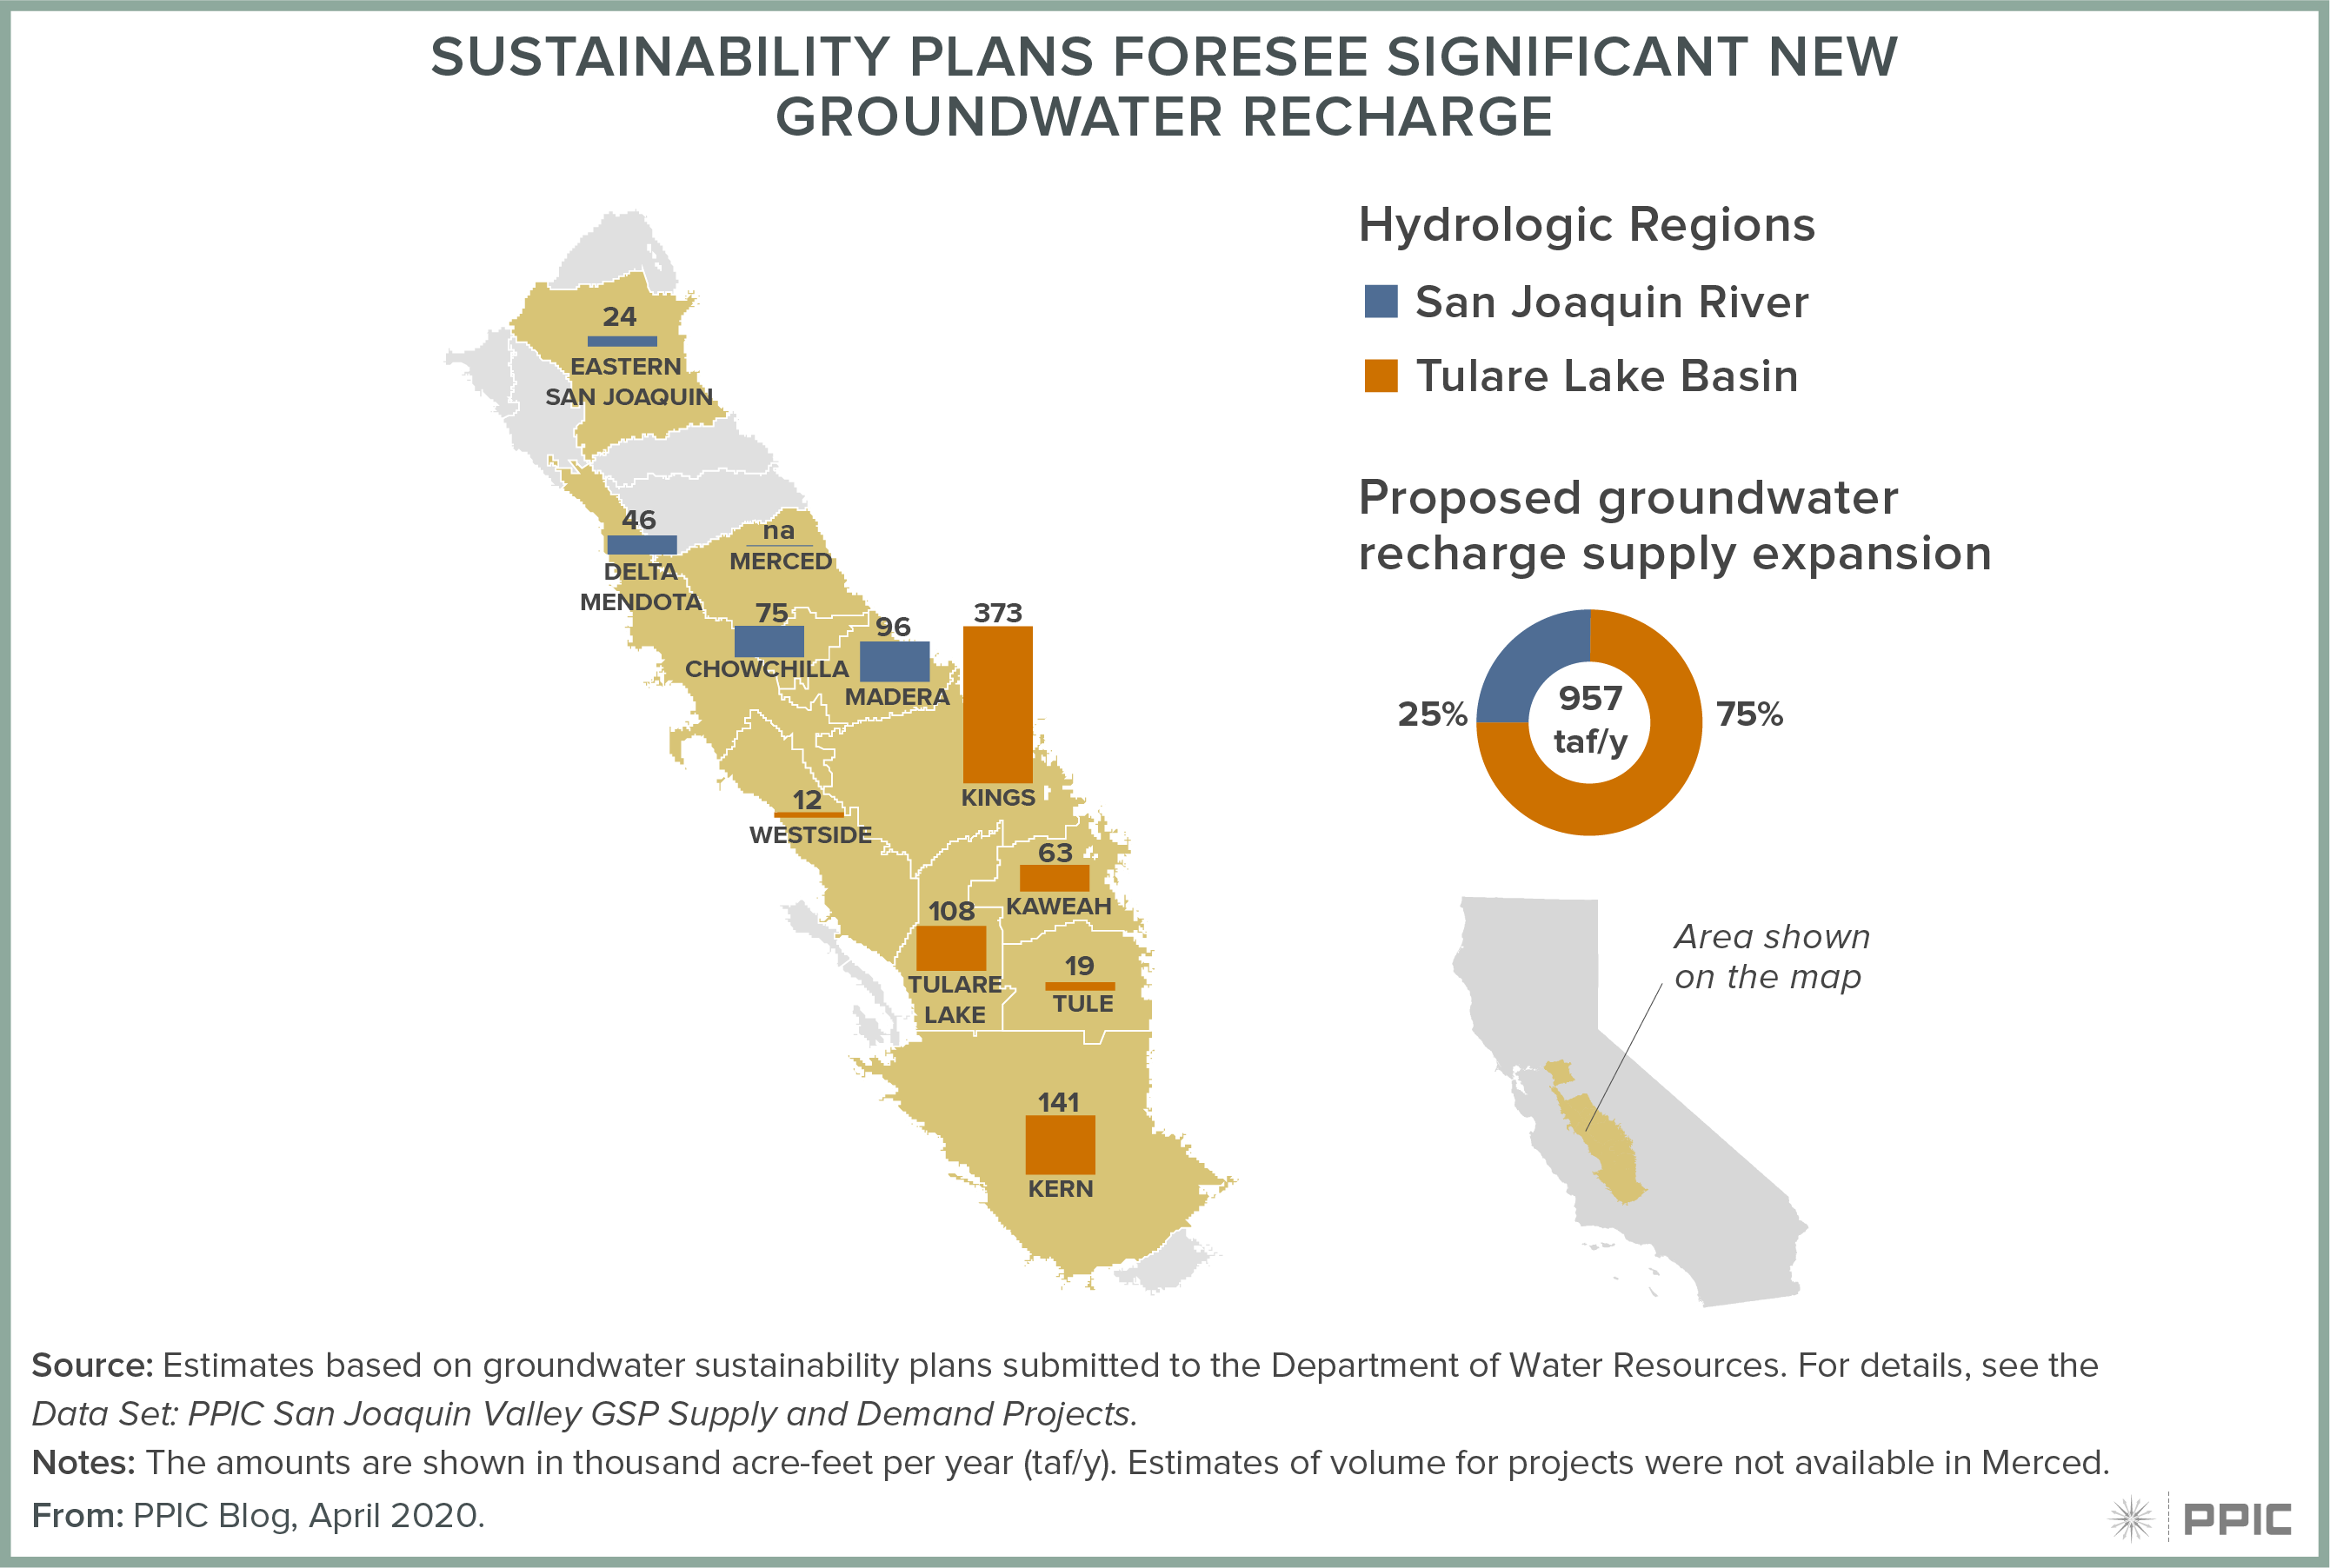 figure - Sustainability Plans Foresee Significant New Groundwater Recharge